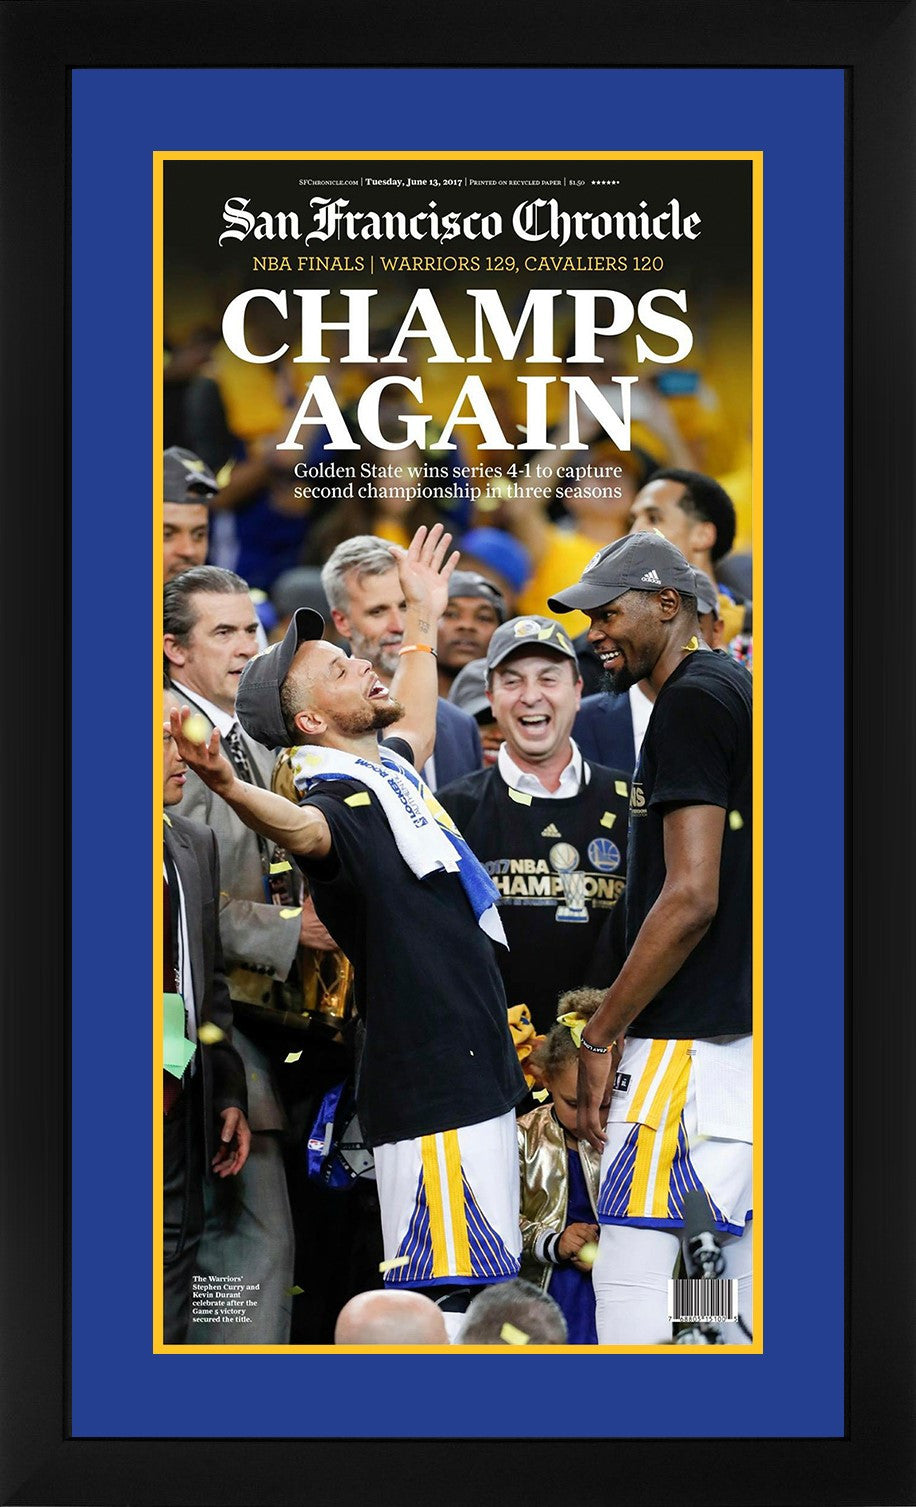 Golden State Warriors 2017 NBA Champions San Francisco Chronicle Framed Newspaper Original Front Page Stephen Curry-Powers Sports Memorabilia